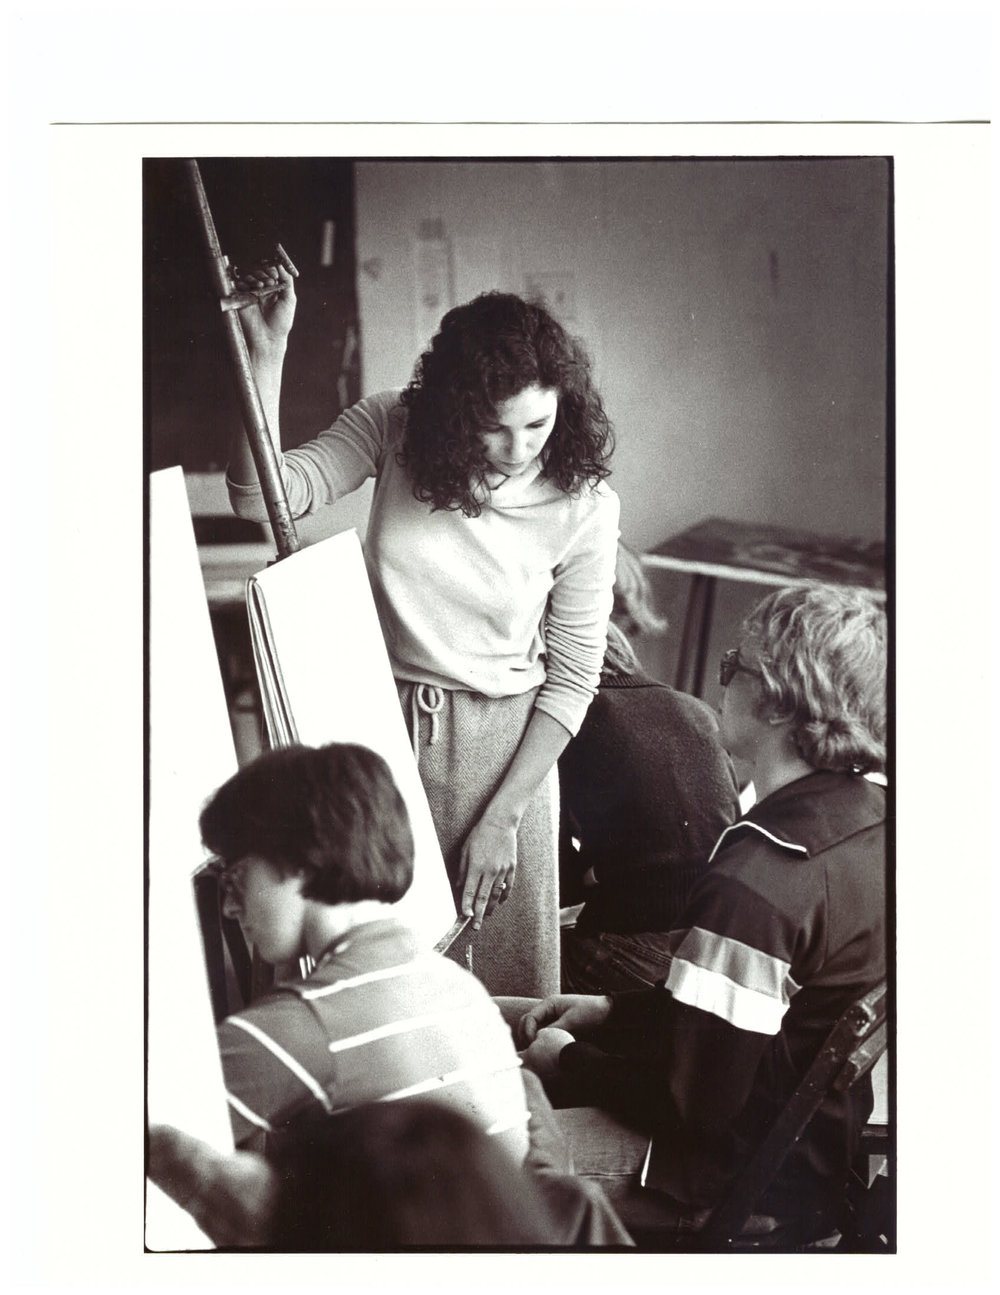 That's me teaching in 1978 at Ivy School of Professional Art.